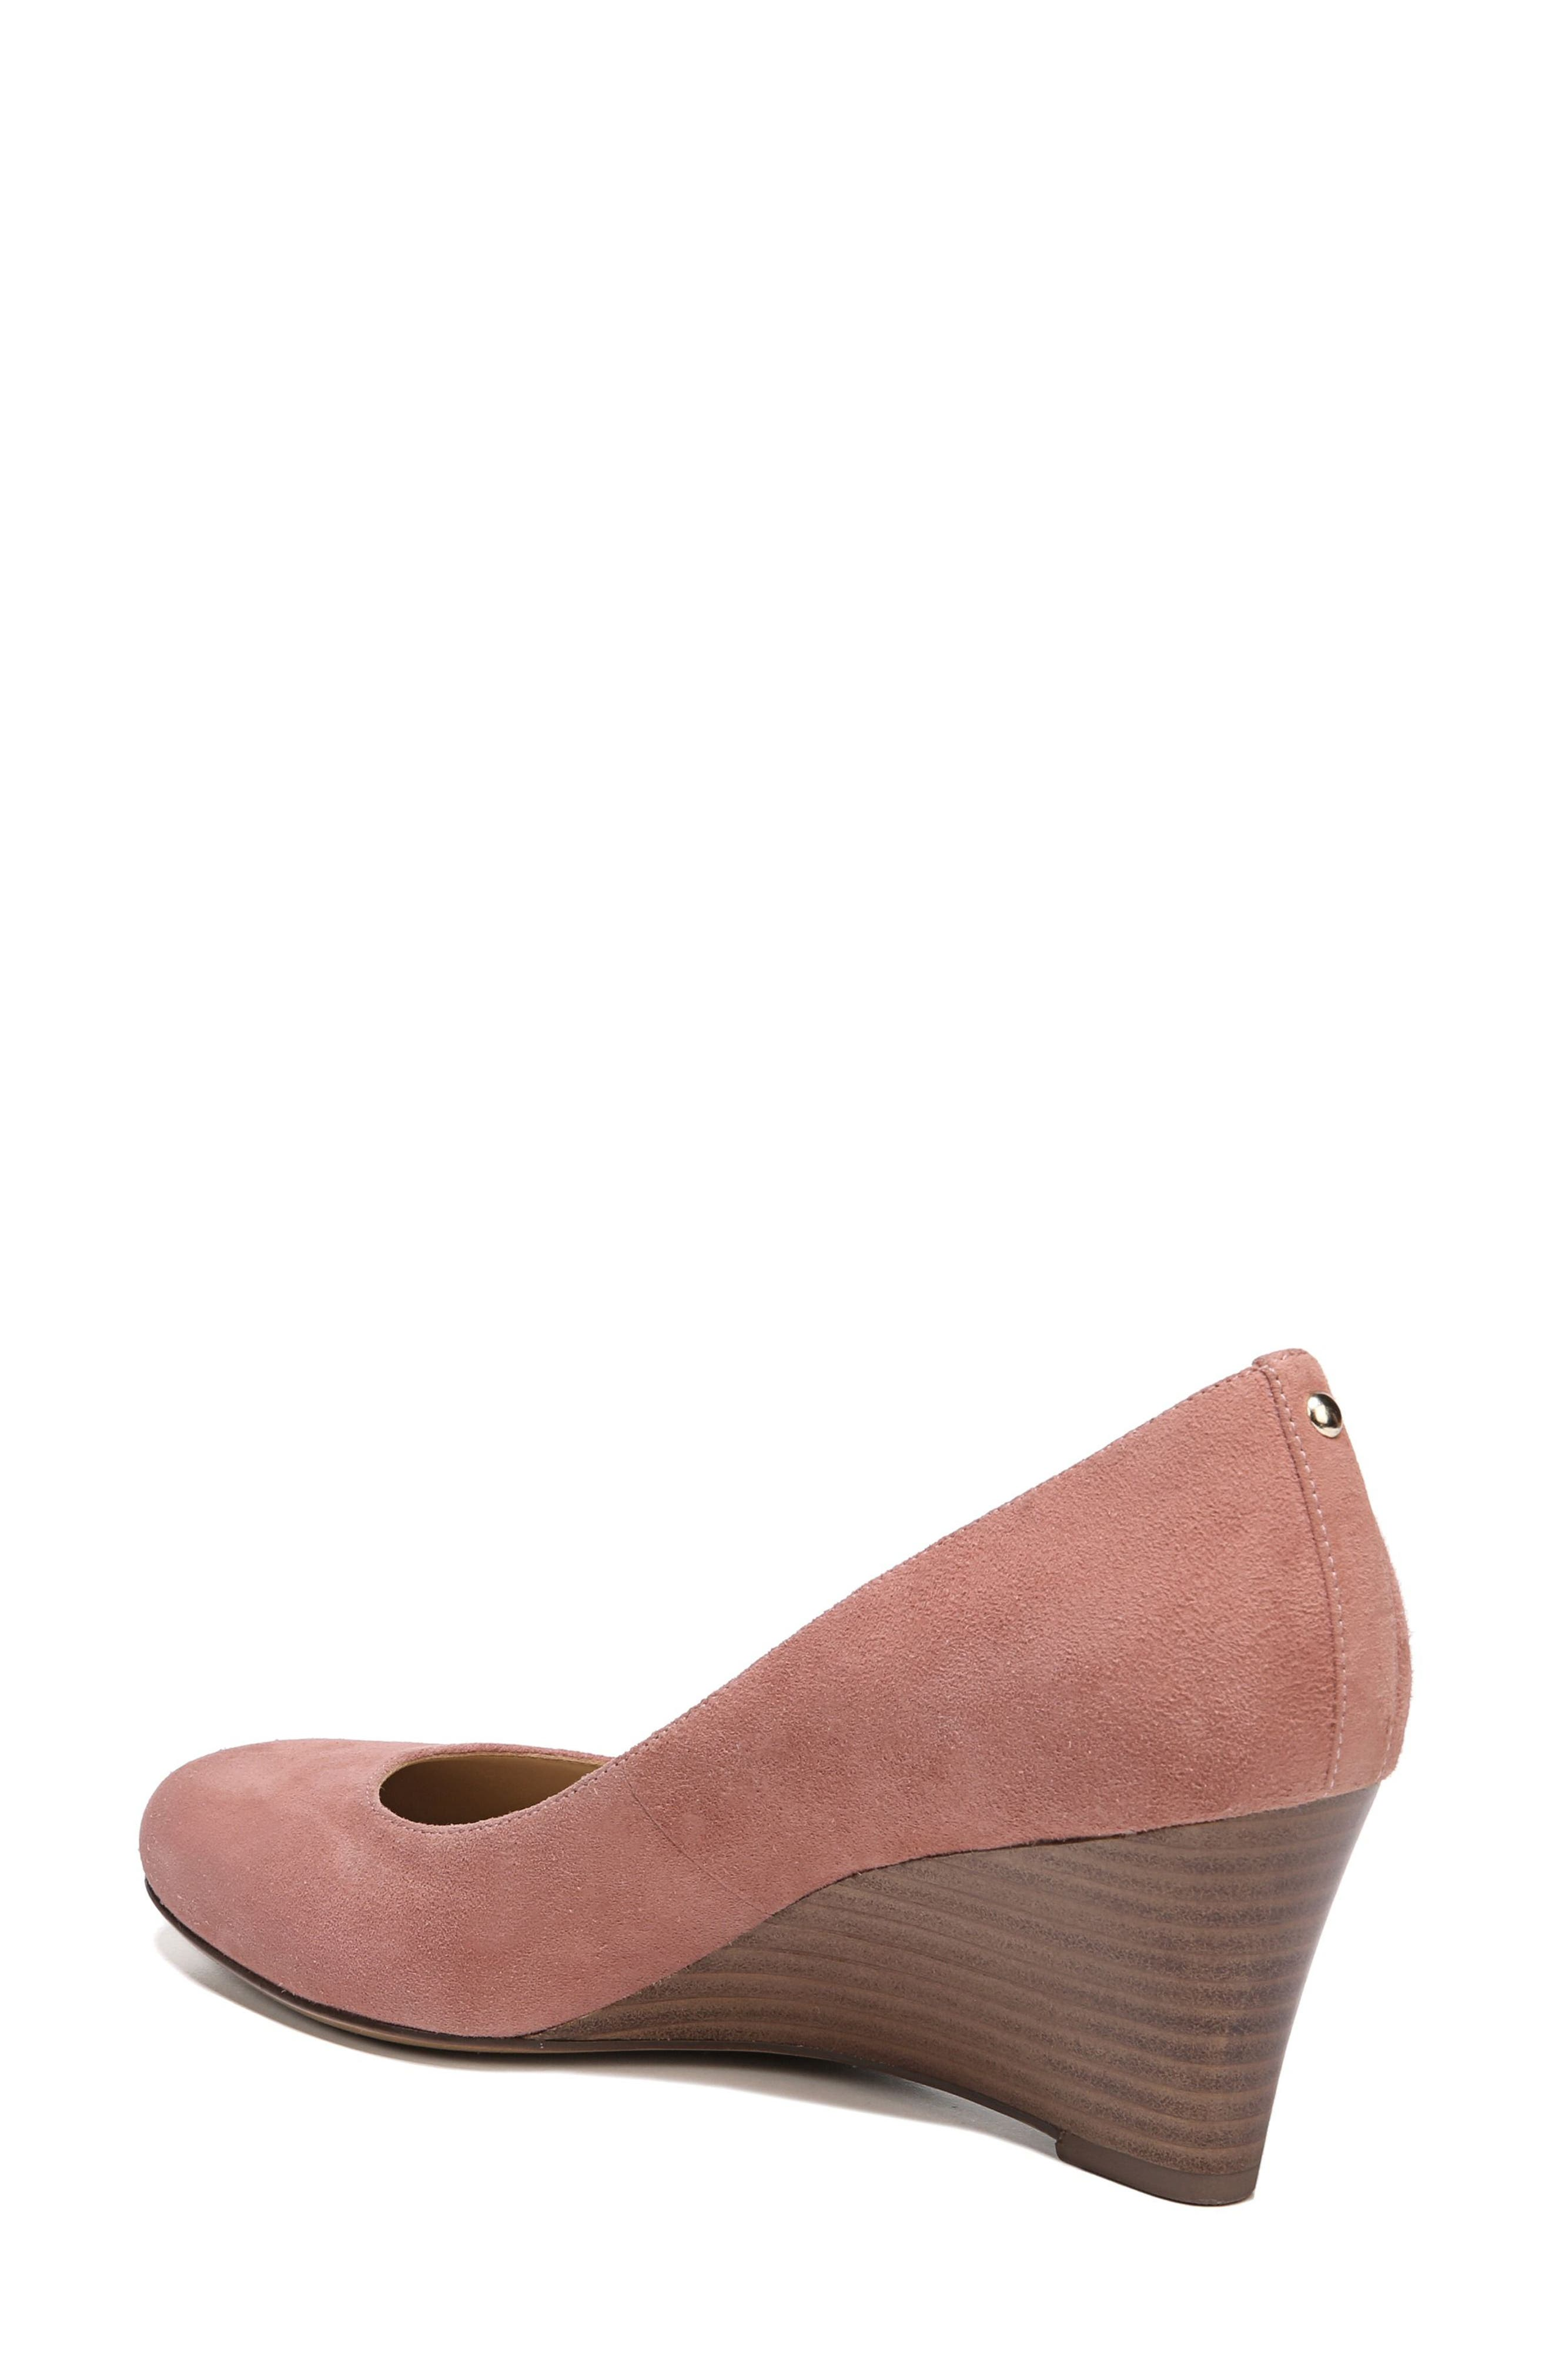 Emily Wedge Pump,                             Alternate thumbnail 2, color,                             Peony Pink Suede